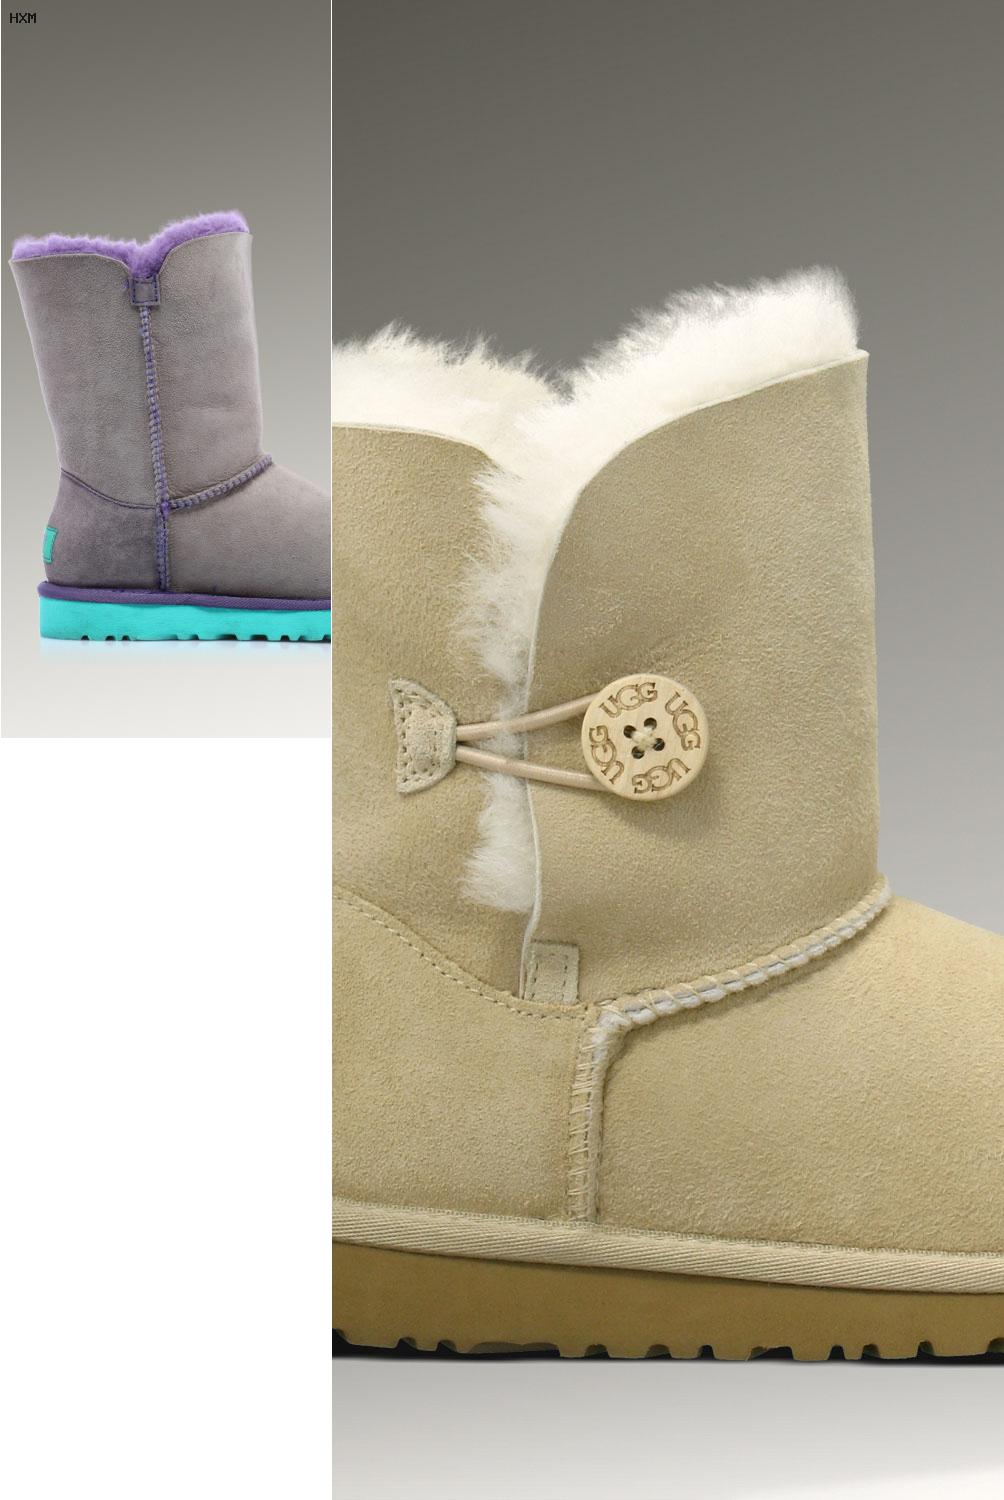 kit limpieza ugg amazon